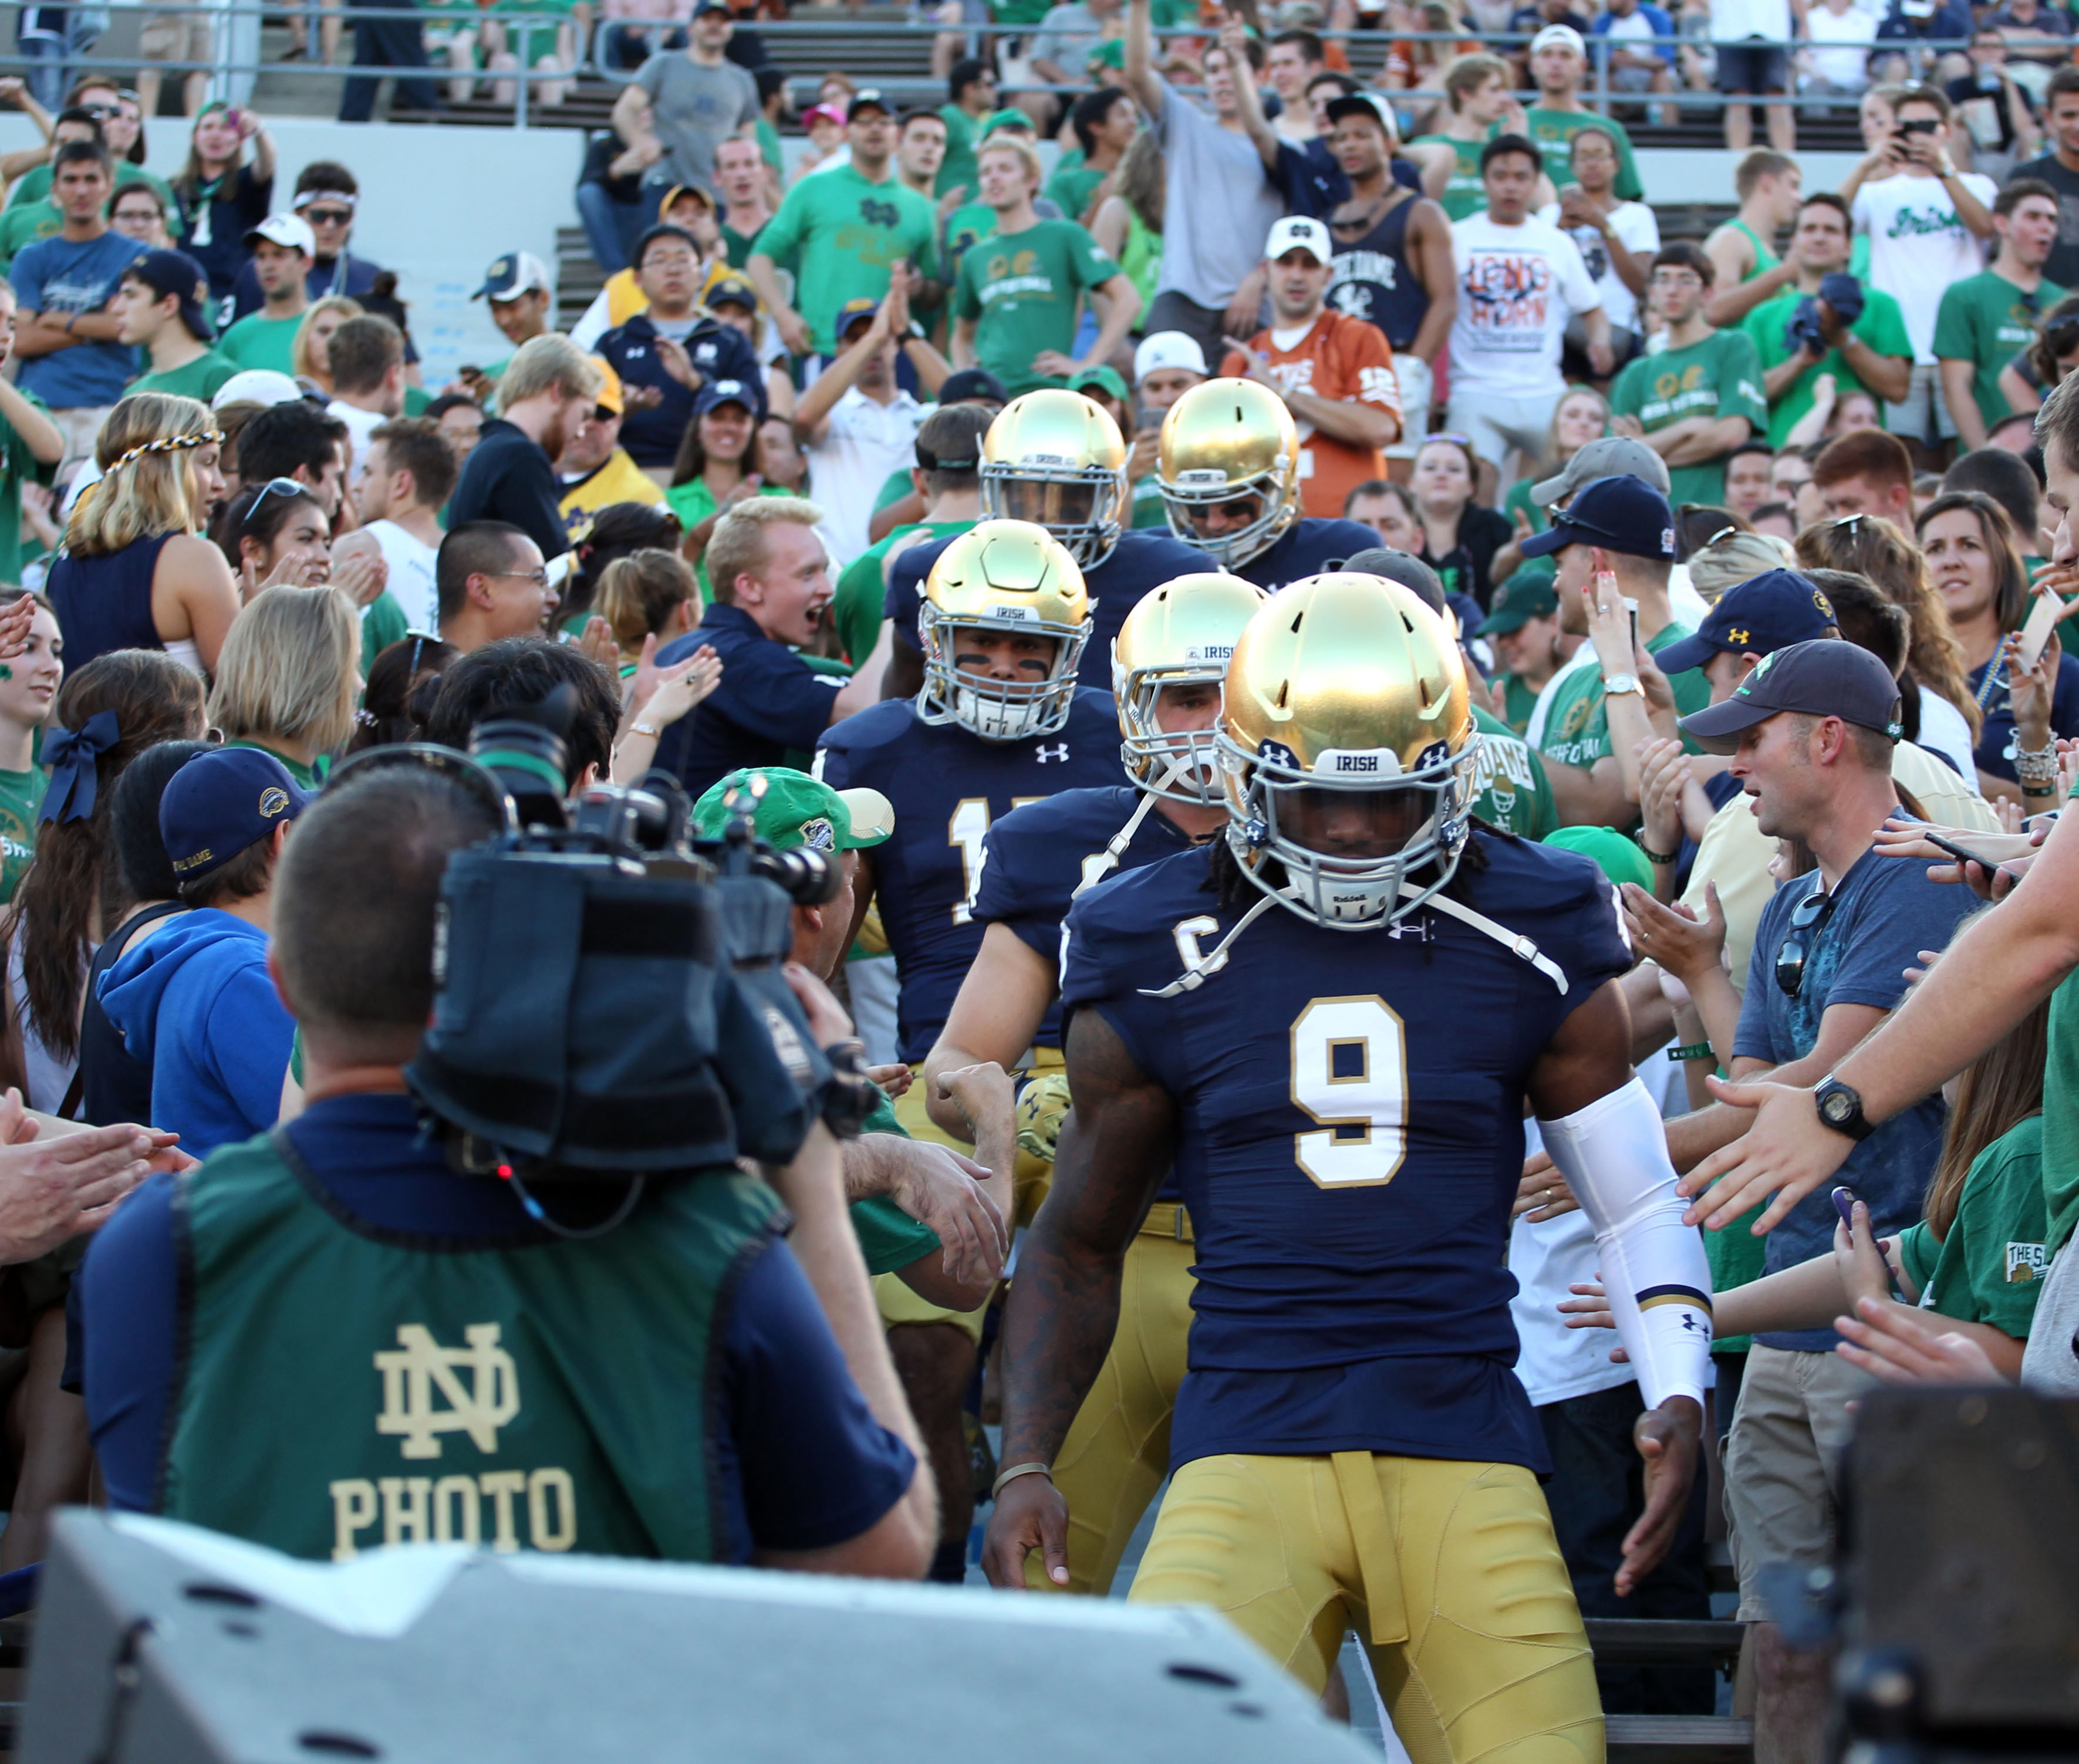 Notre Dame Football: Don't Let All the Change Scare You